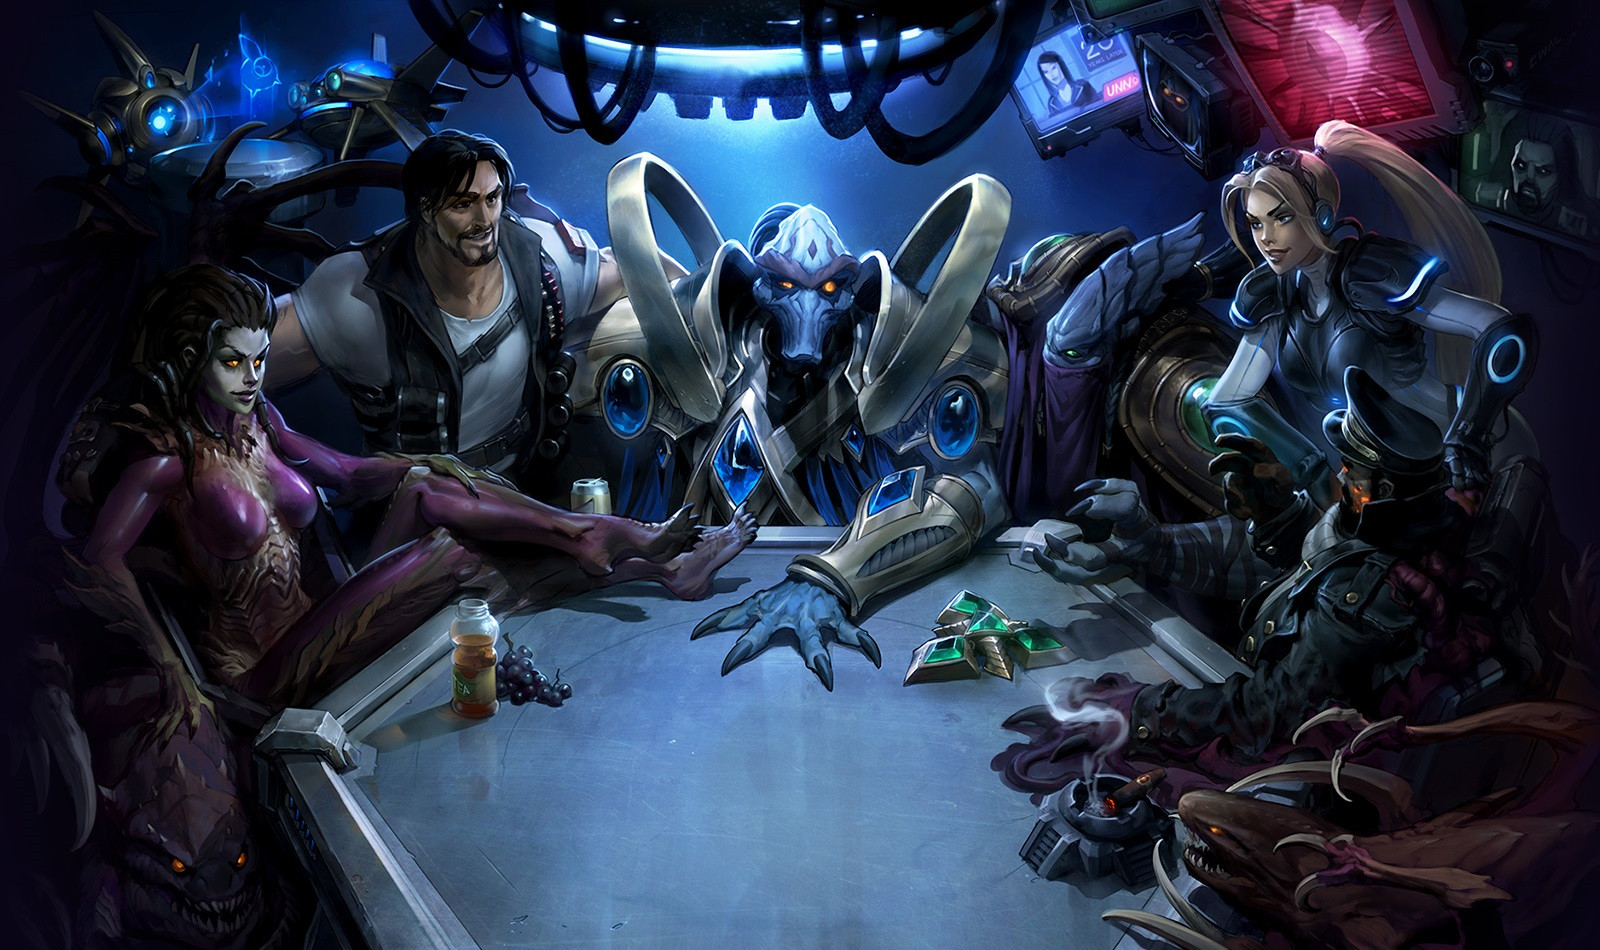 Blizzard Celebrates StarCraft's 20th Anniversary with Events and In-Game Rewards